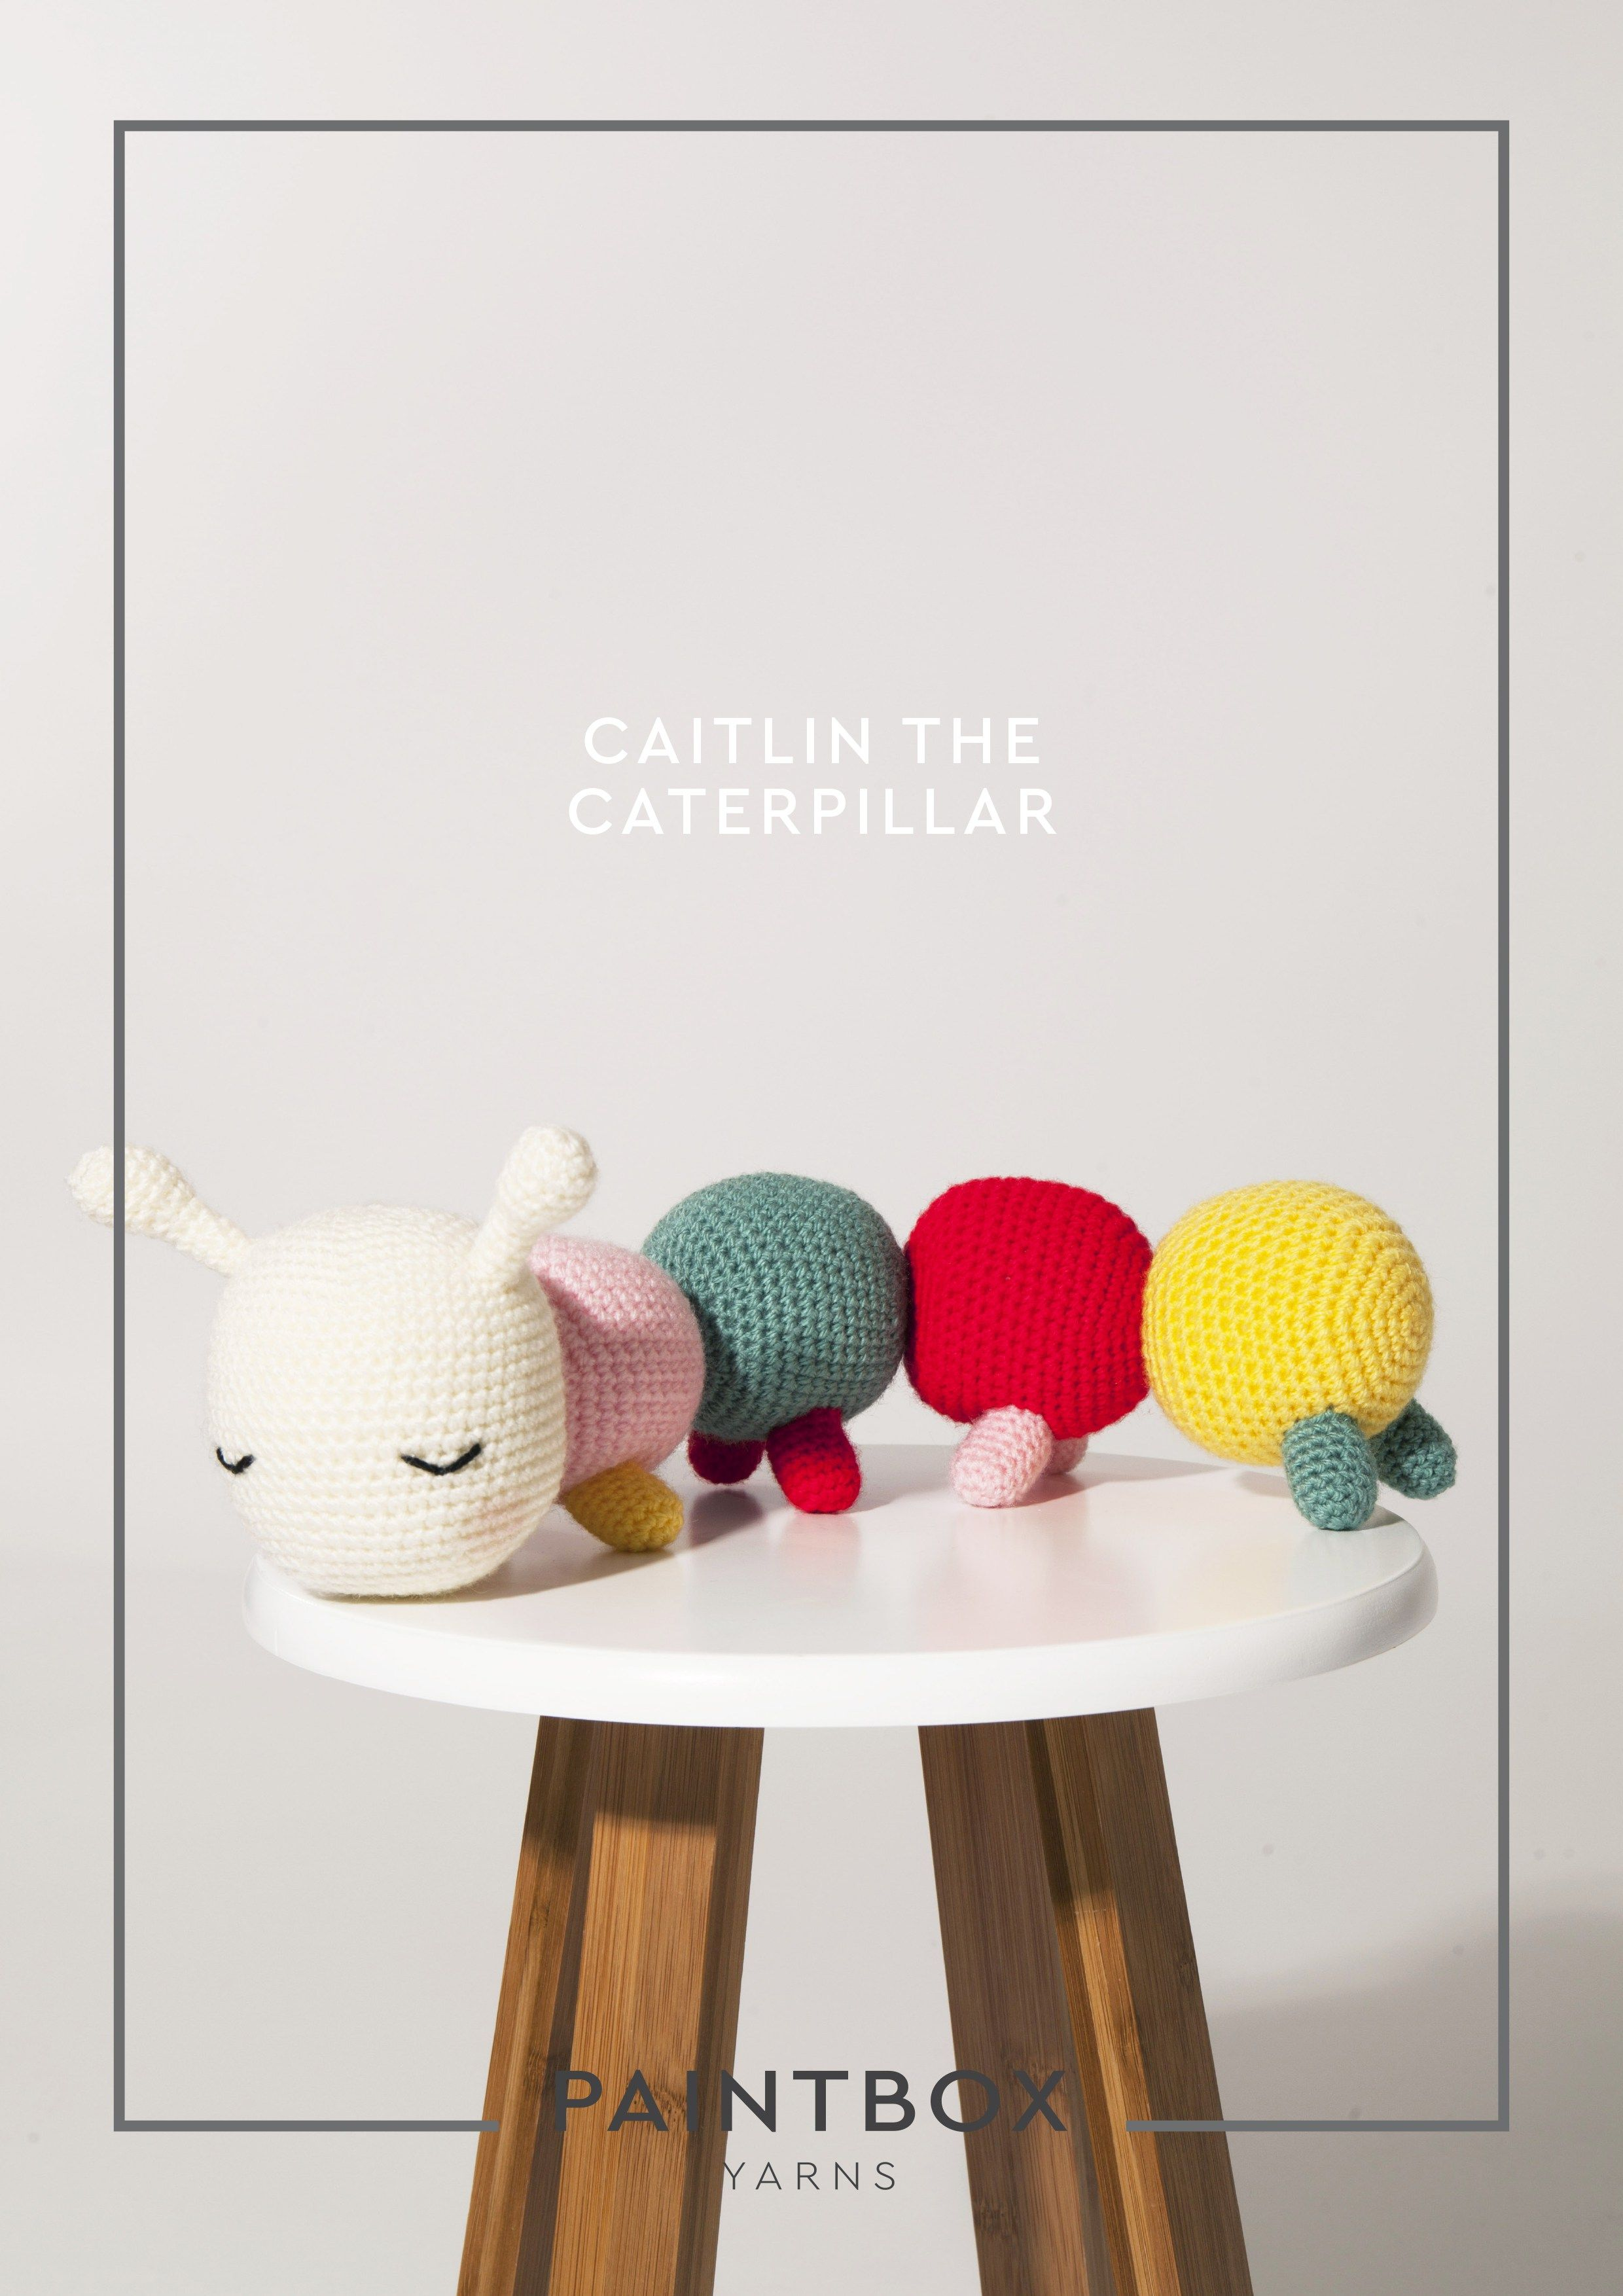 Paintbox Yarns Crochet Pattern - Caitlin the Caterpillar - adorable ...